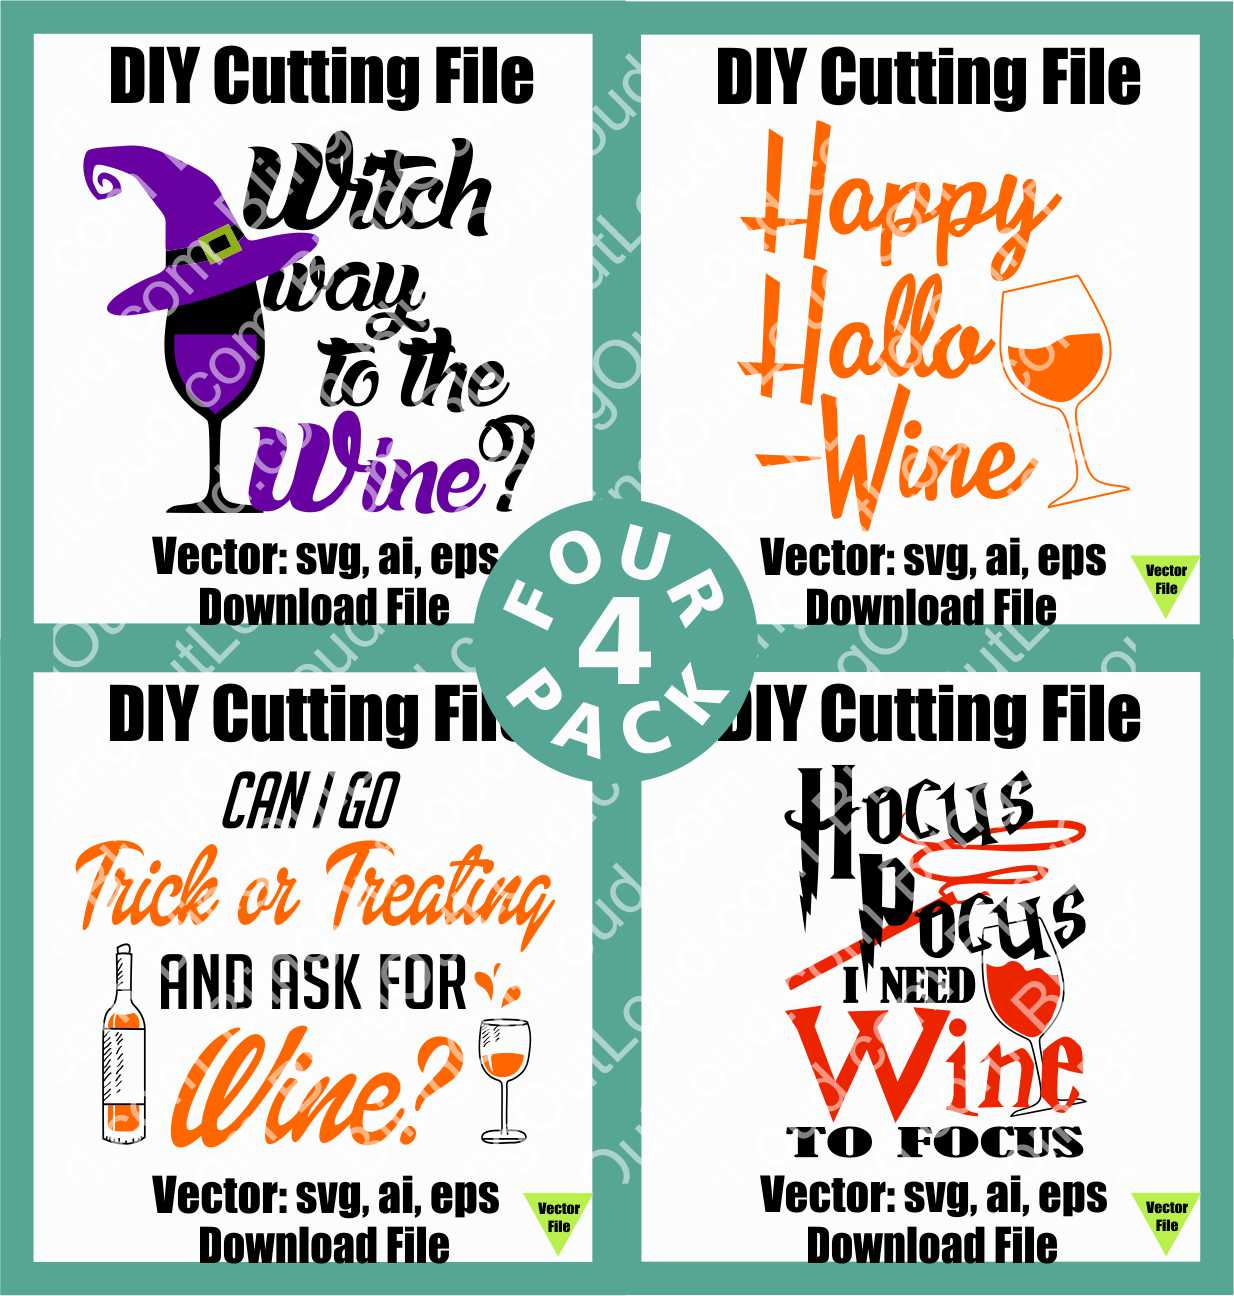 Hallo-WINE Vectors for the Fun Side of the Season